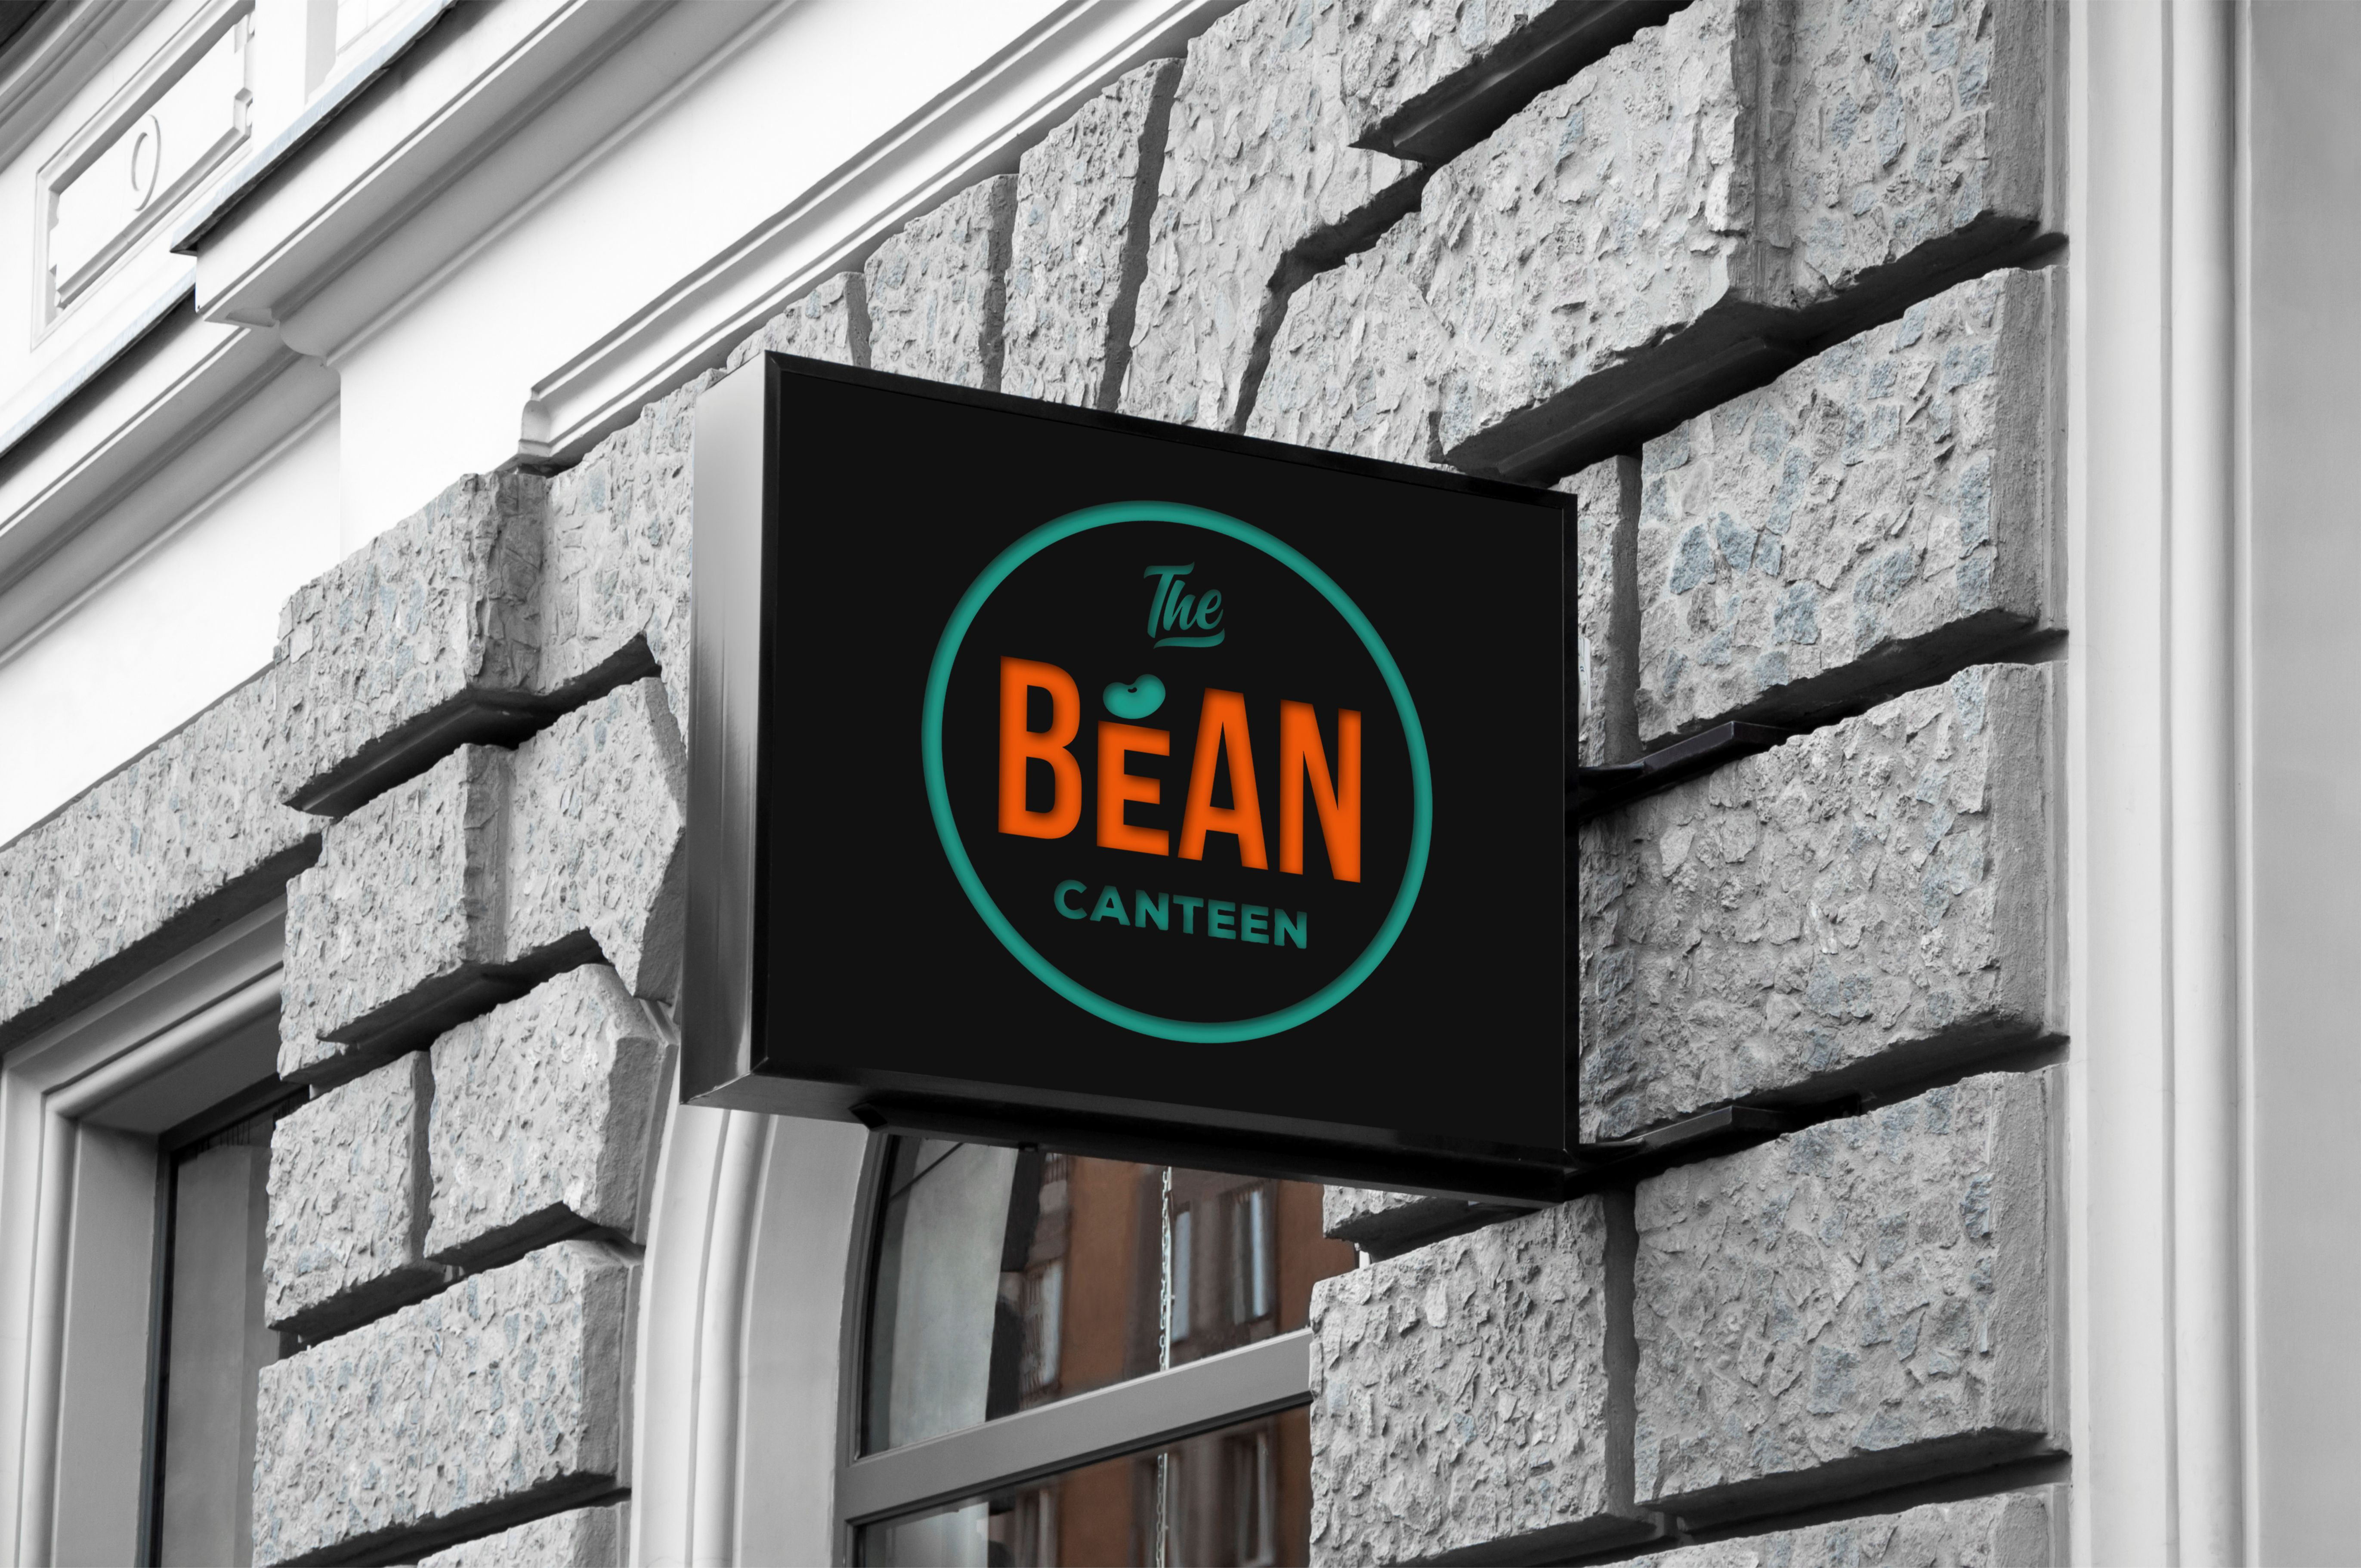 The Bean Canteen (restaurant) is looking for an iconic logo